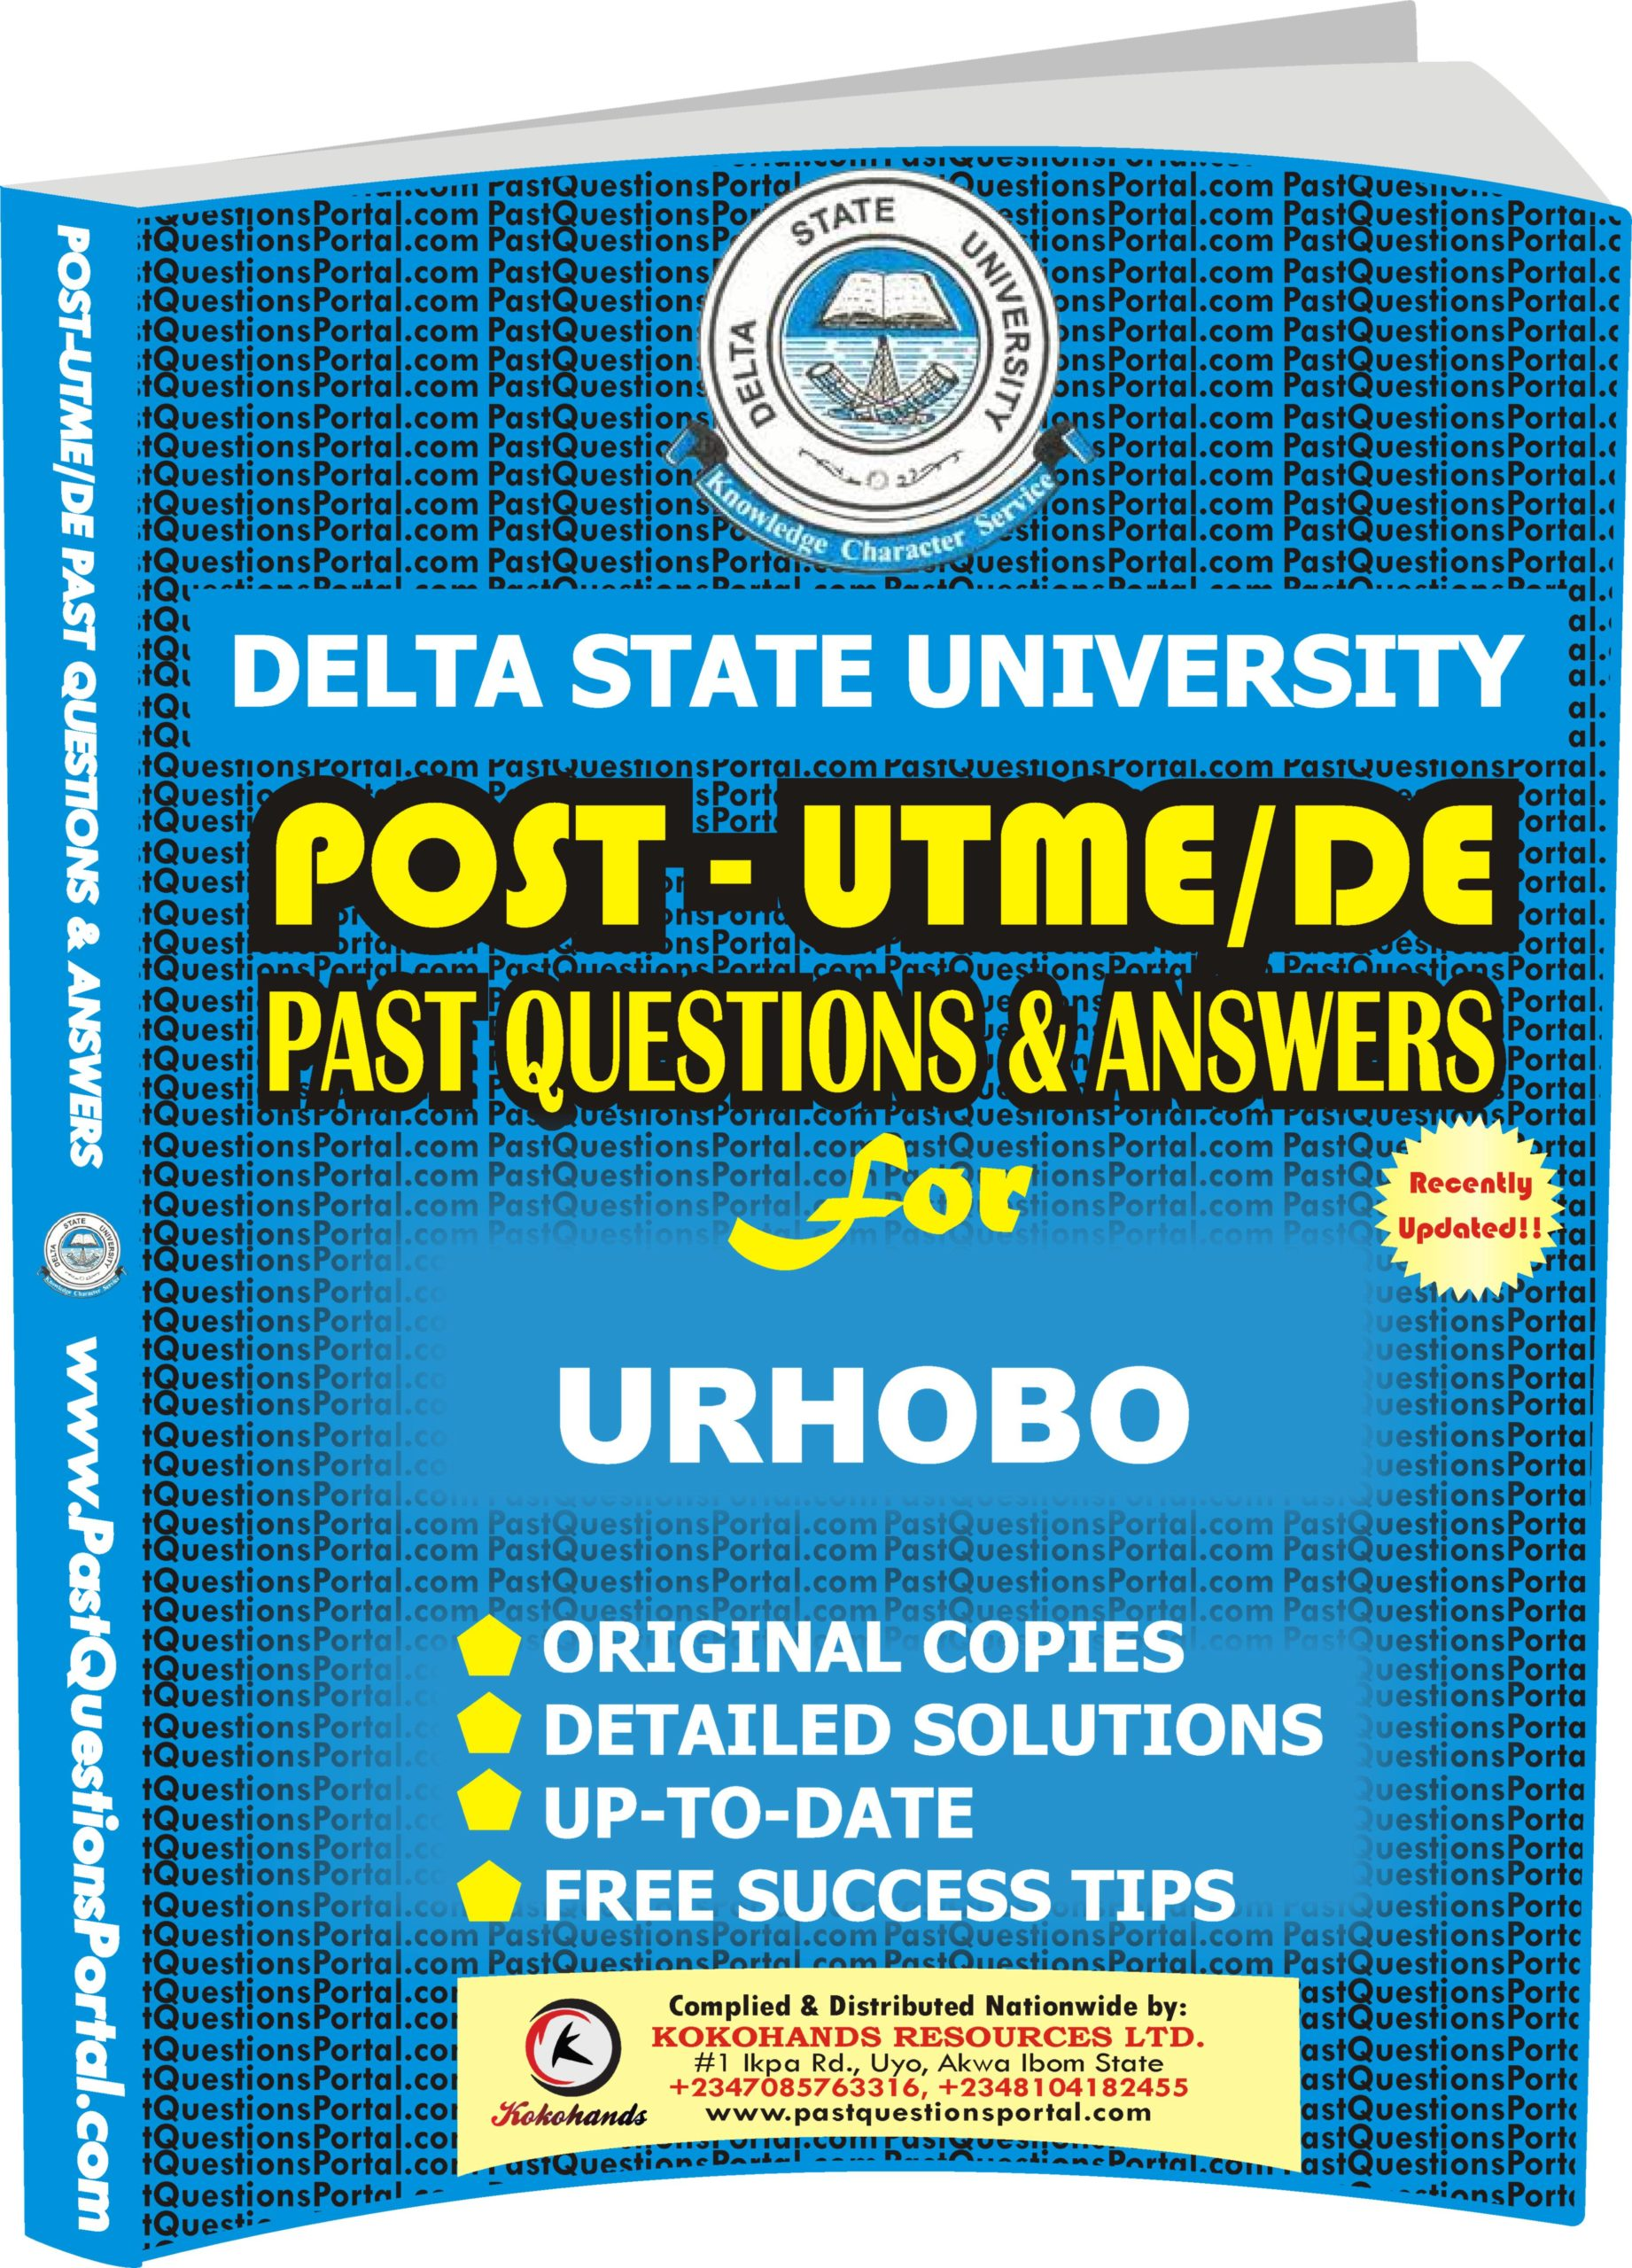 DELSU Post UTME Past Questions for URHOBO